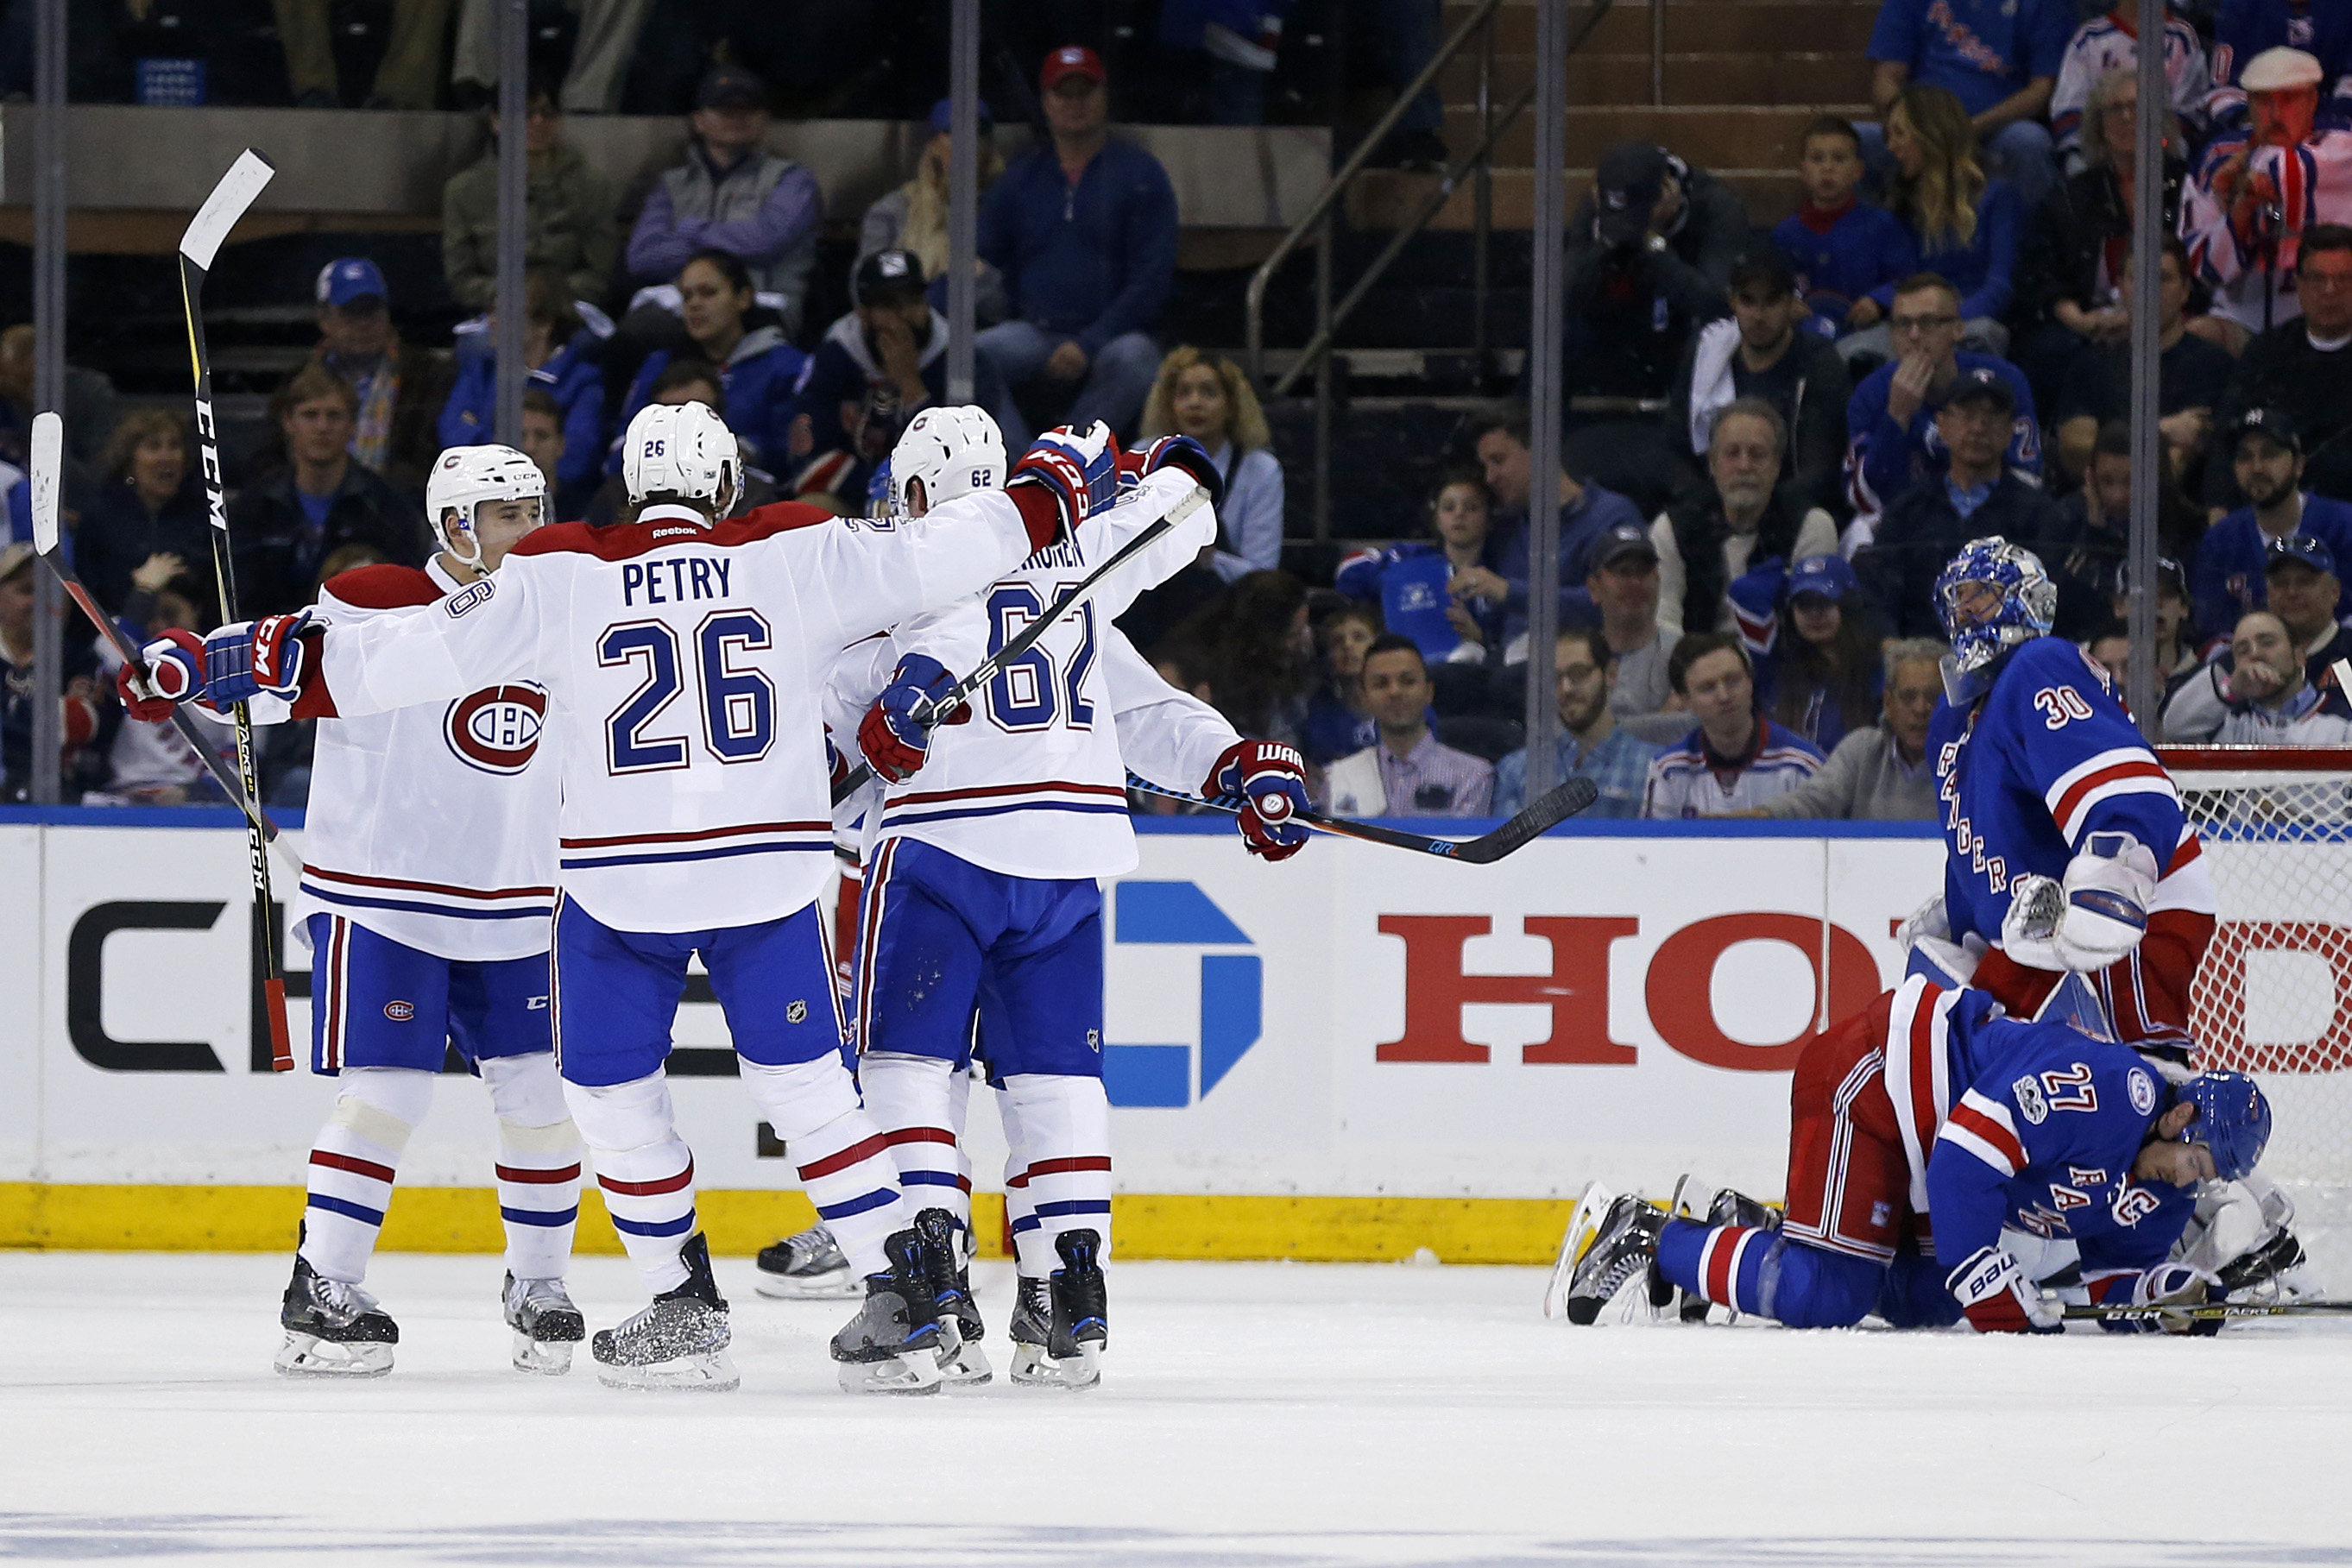 10016798-nhl-stanley-cup-playoffs-montreal-canadiens-at-new-york-rangers